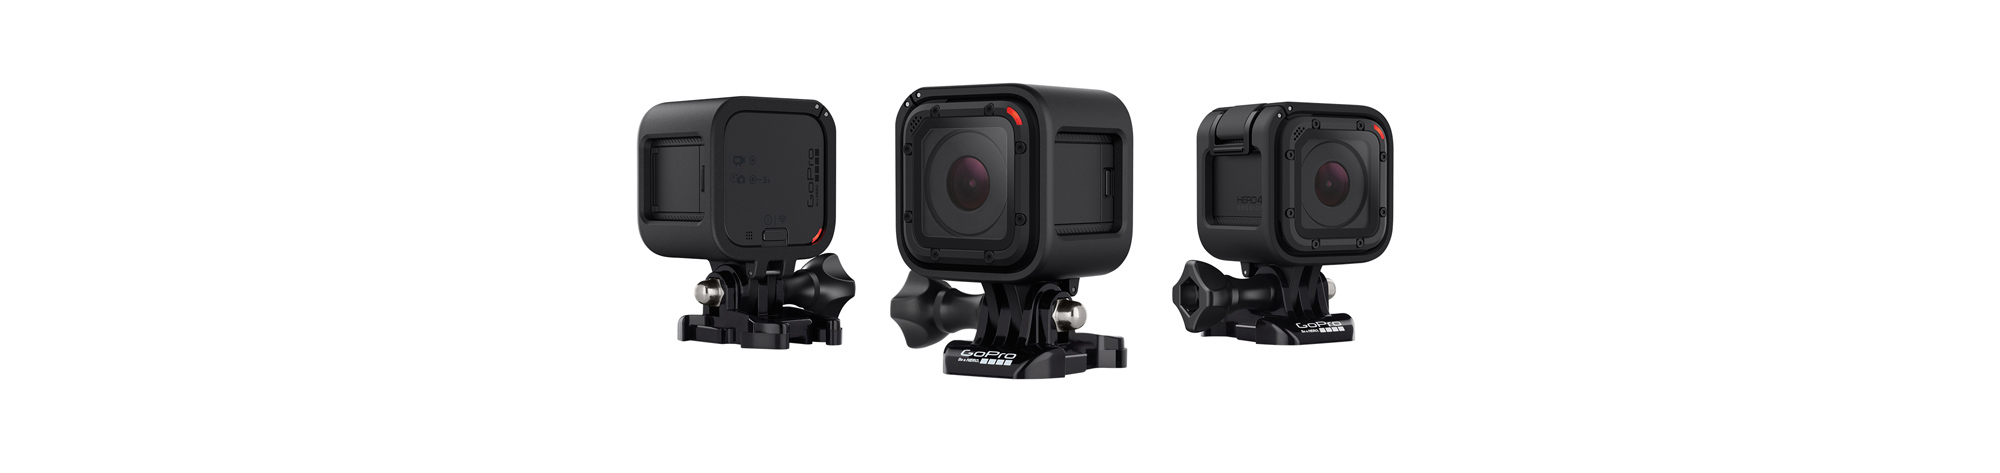 GoPro's latest camera, the Hero4 Session, plays nice with iPhone